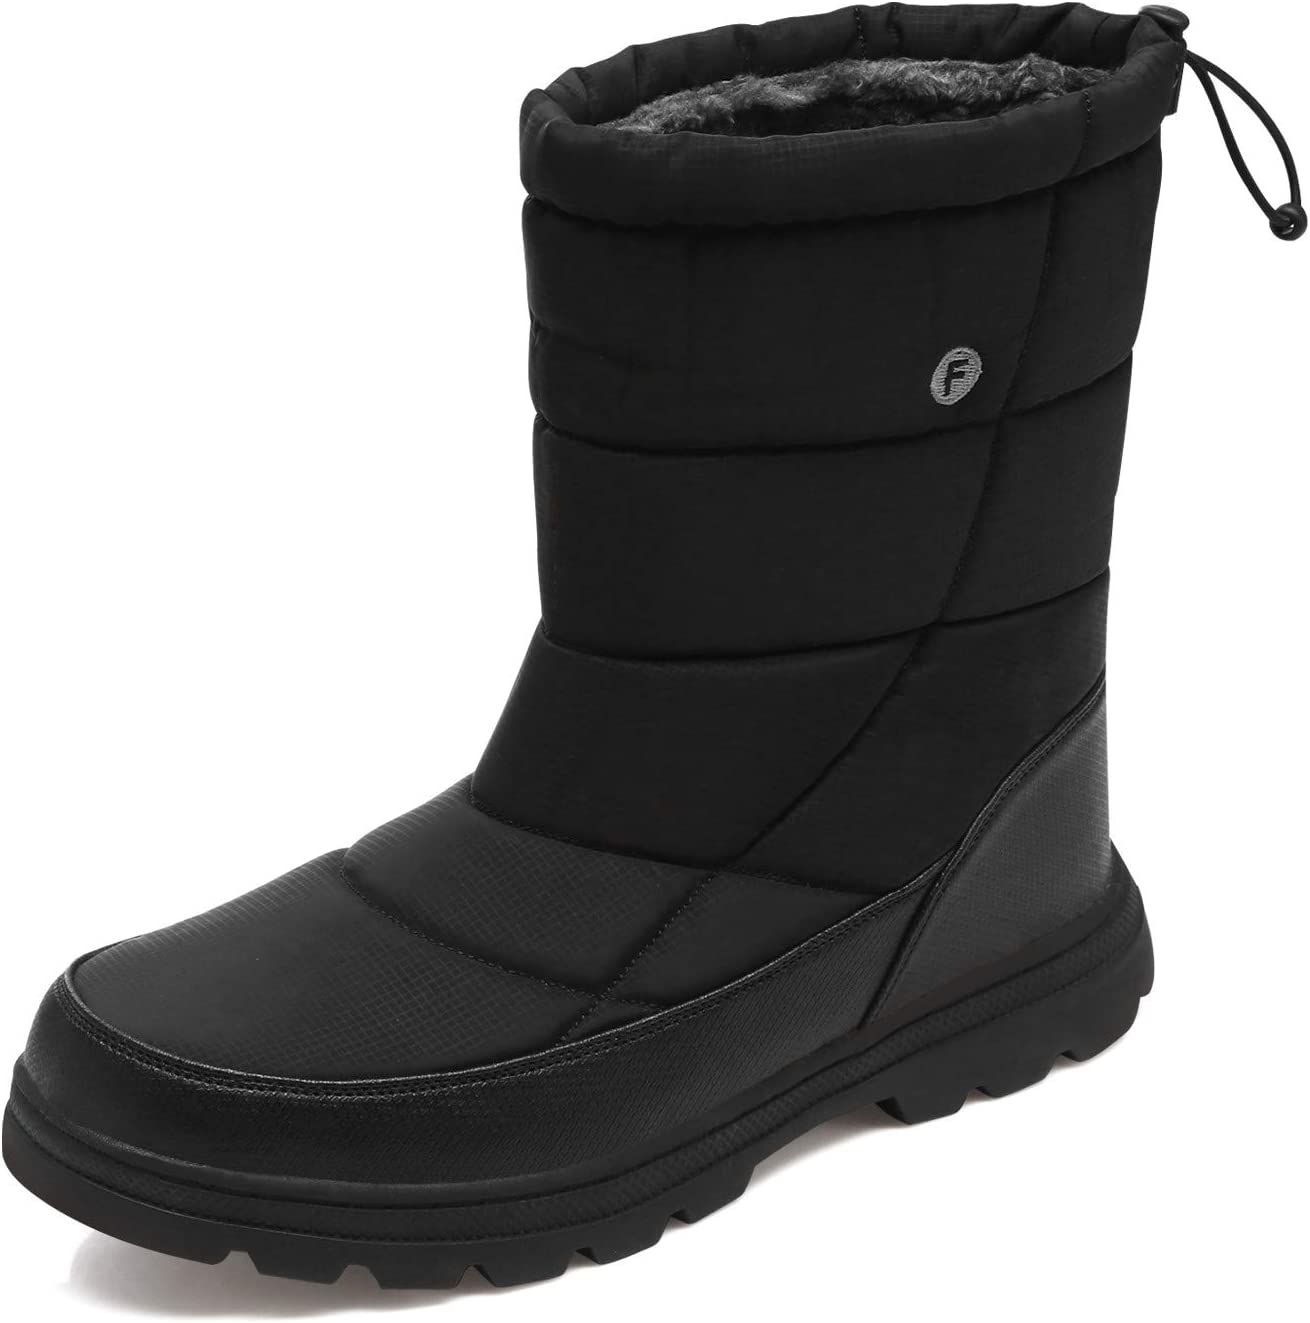 ODOUK Womens Snow Boots Waterproof Outdoor Mid Calf Warm Winter Fur Lined Shoes